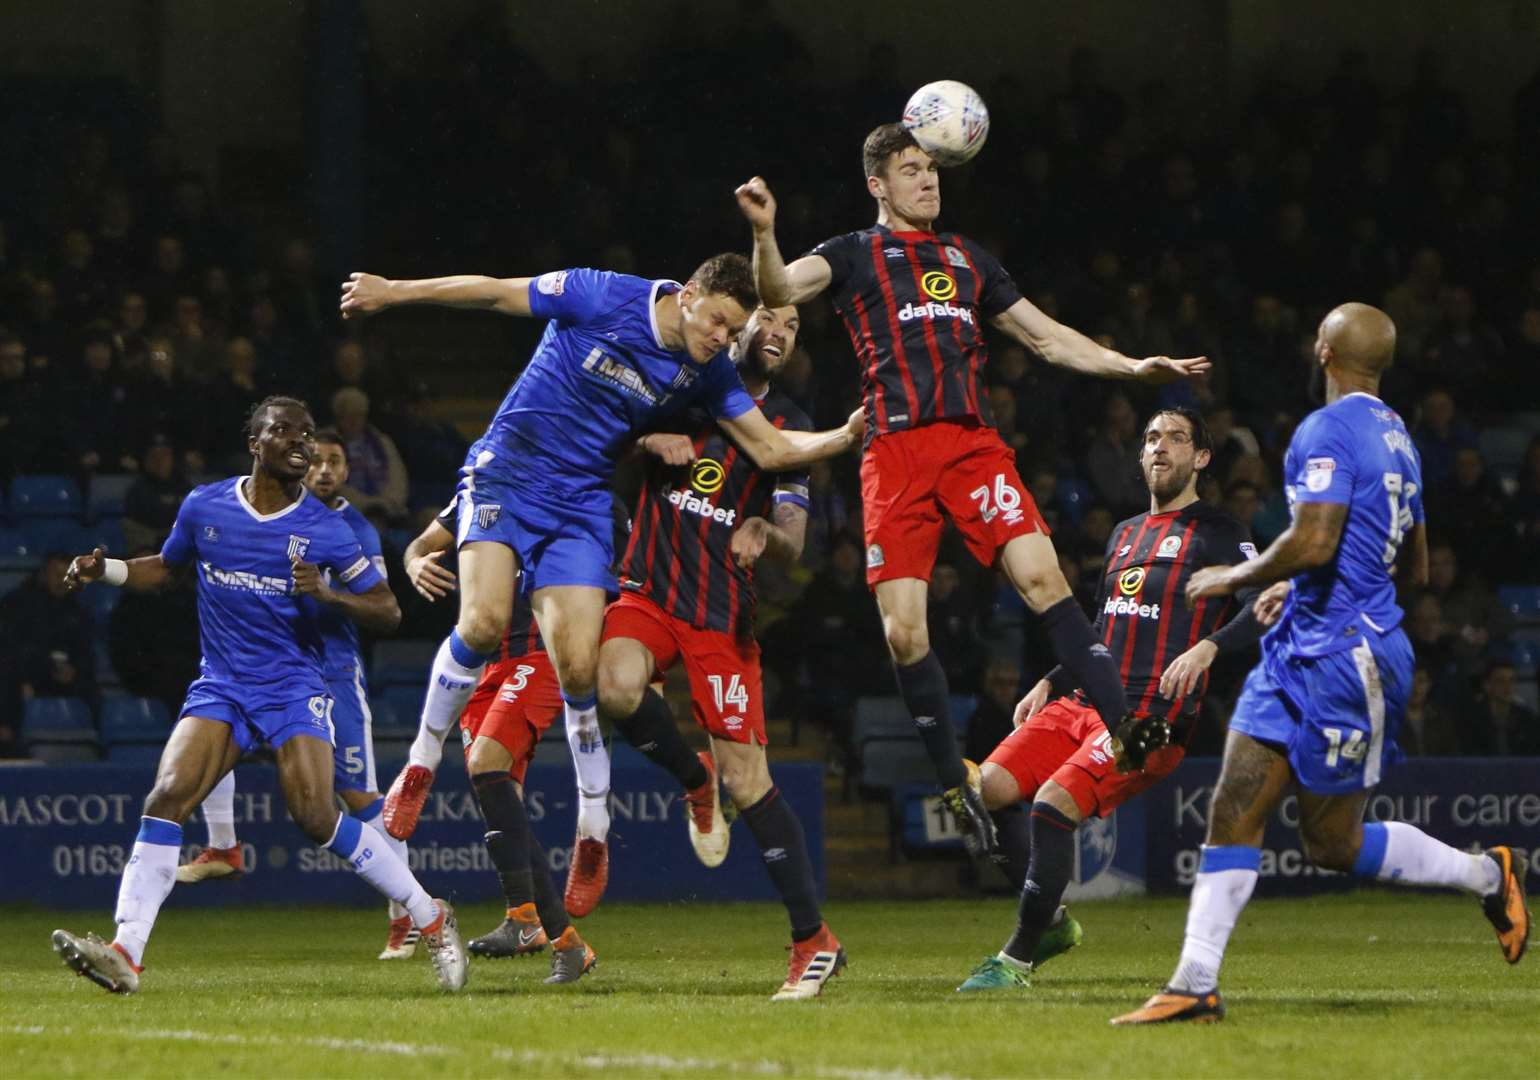 Blackburn defender Darragh Lenihan beats Gillingham defender Ben Nugent to the ball Picture: Andy Jones